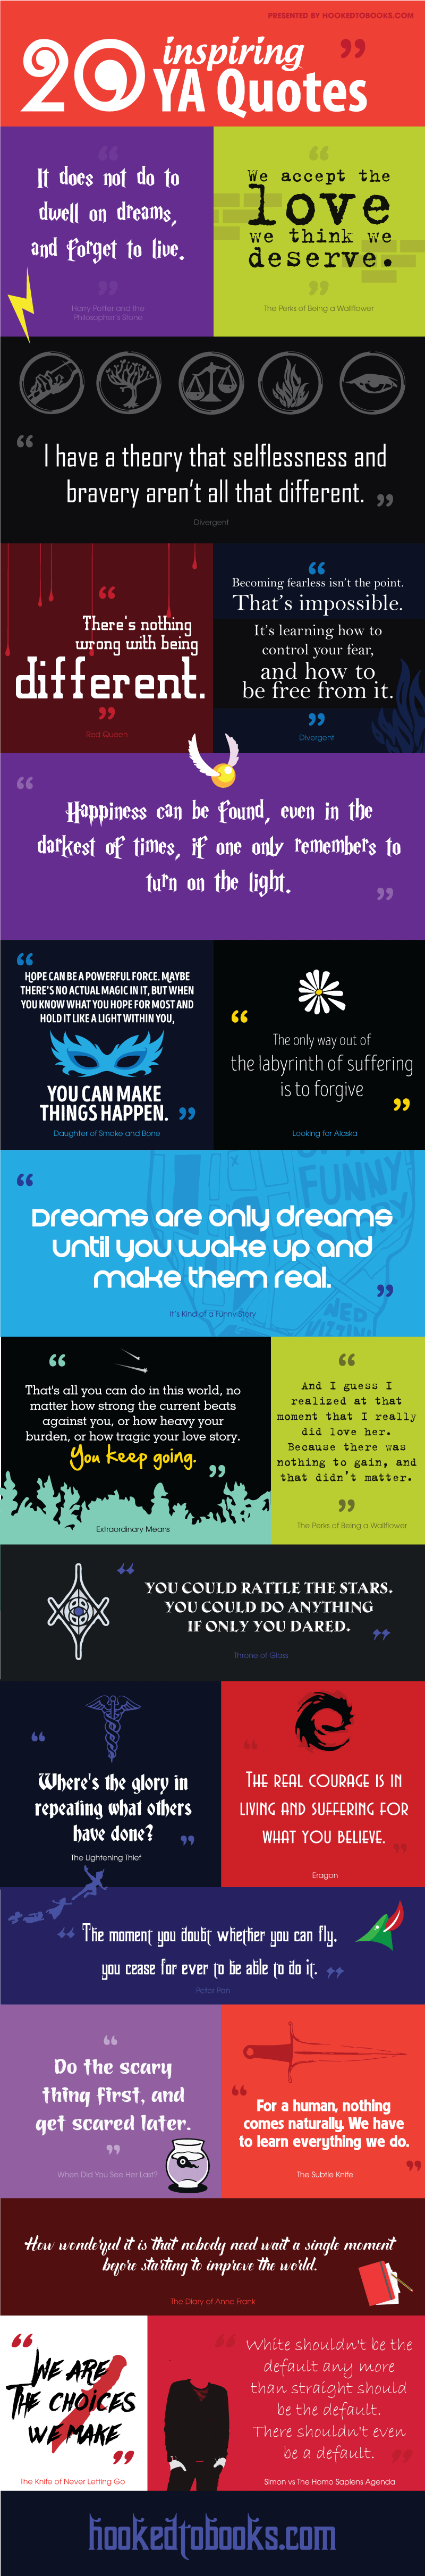 20 Inspirational YA Book Quotes